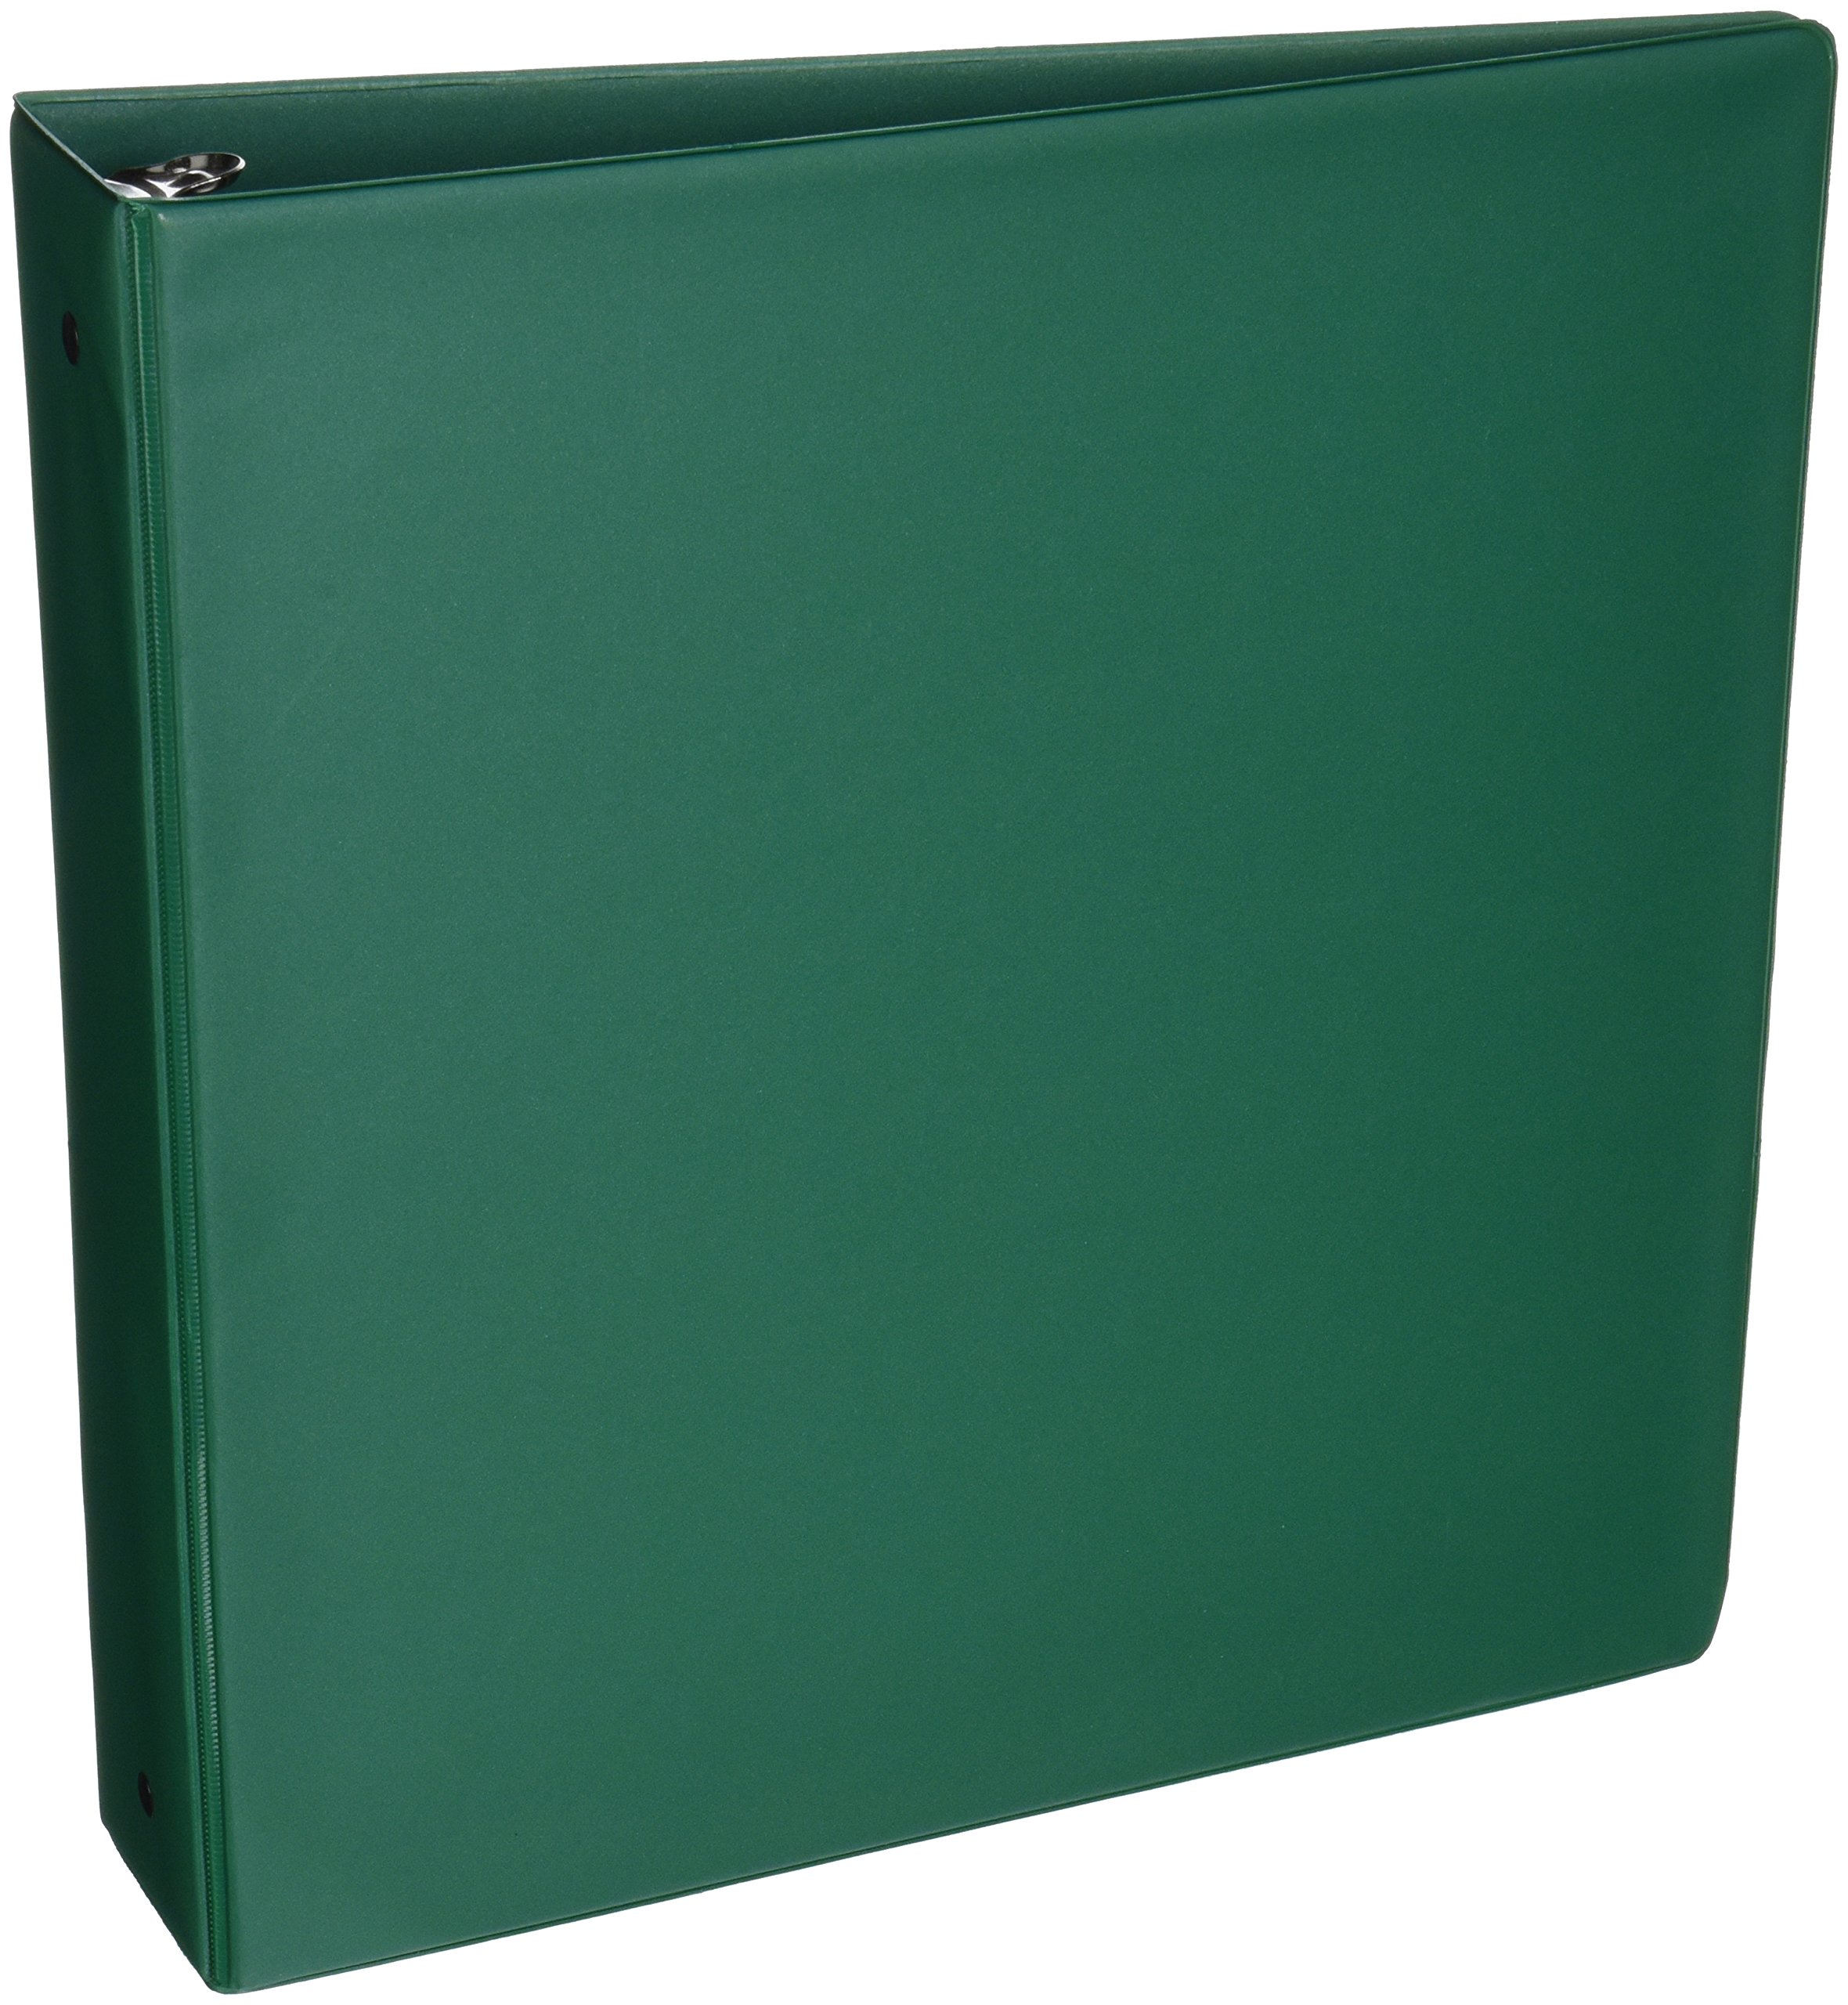 Samsill 2 Inch Value Document Storage 3 Ring Binder , Round Ring, 11 x 8.5 Inches, Green (11604)